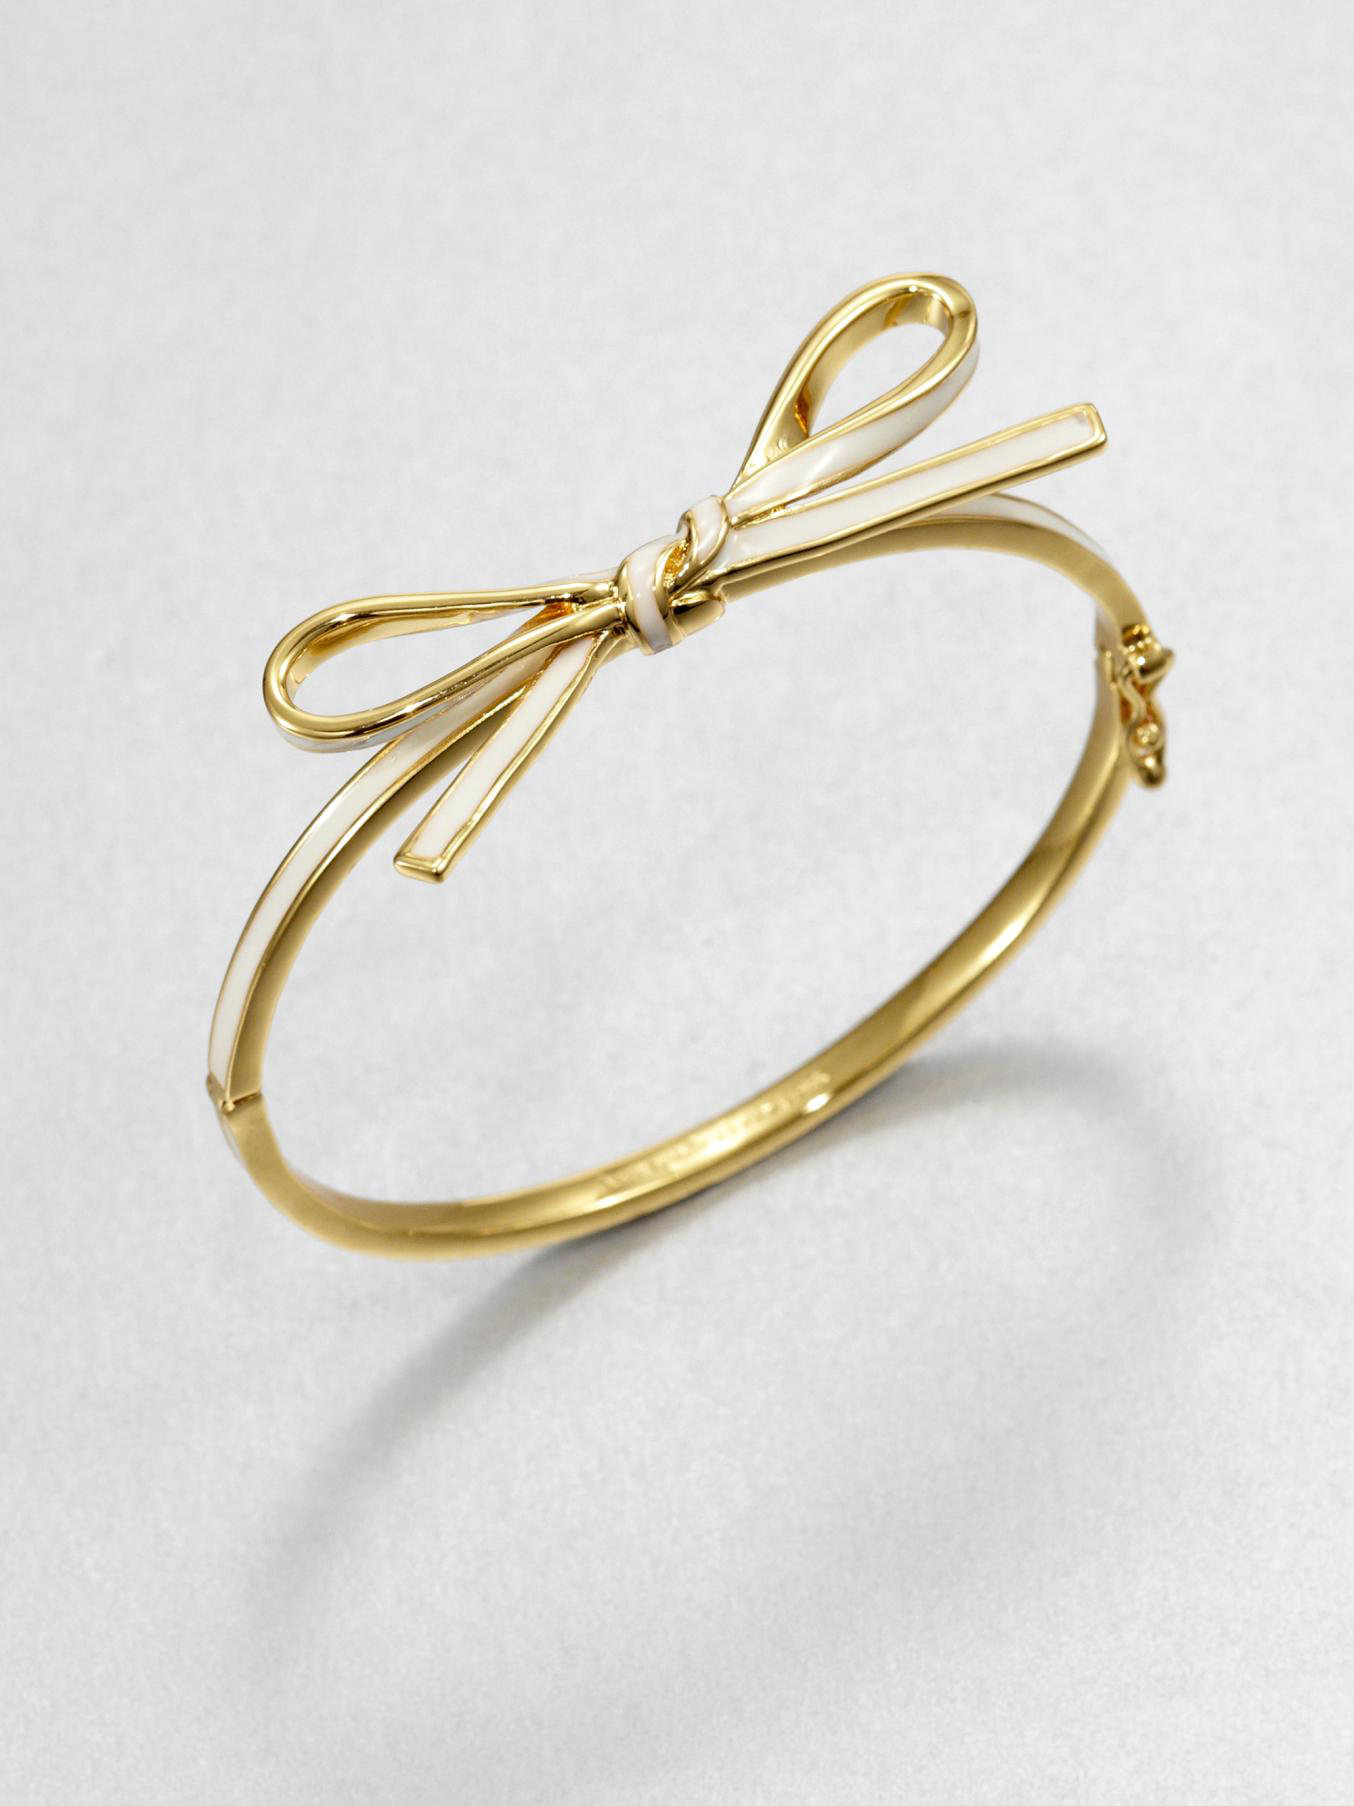 Skinny Mini Enamel Bow Bangle Bracelet